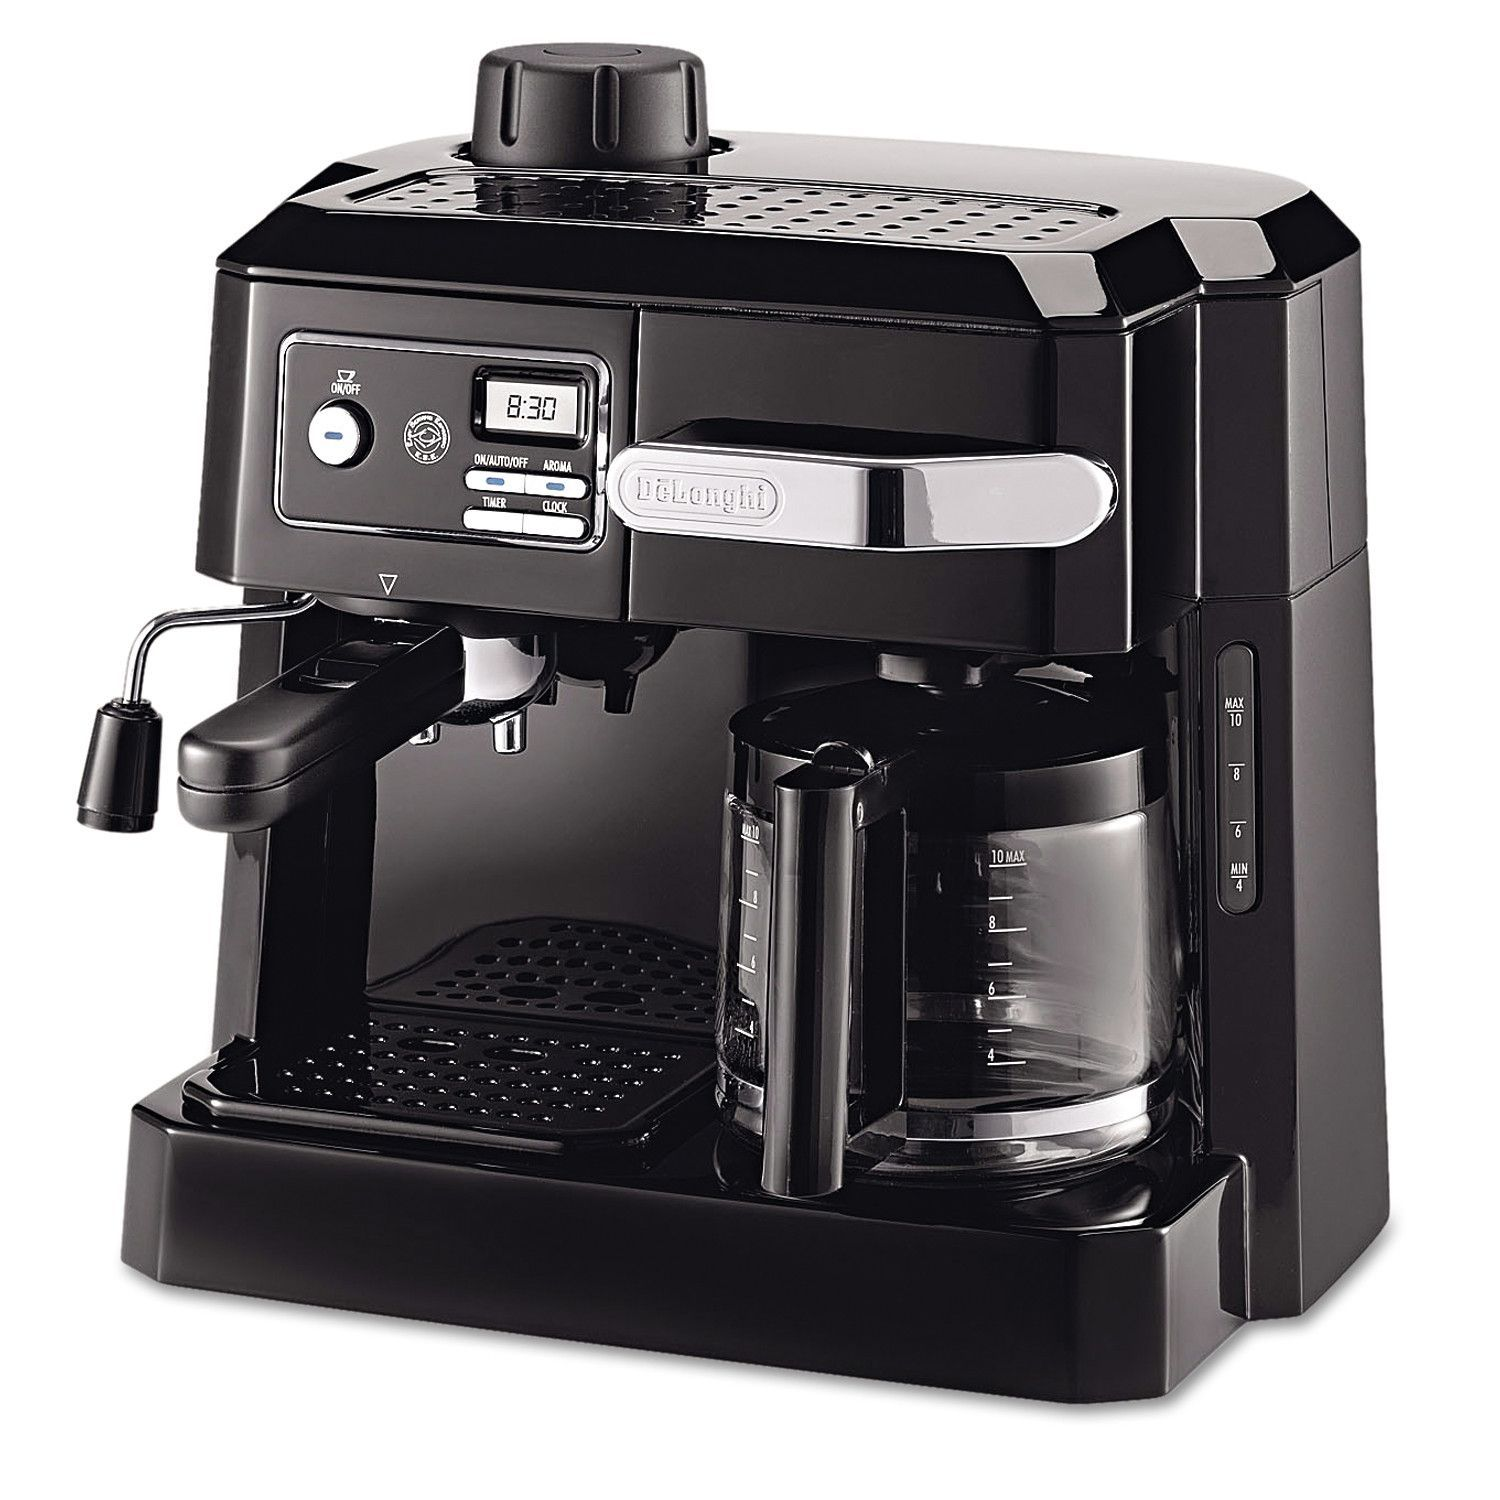 Combination Machine Coffee/Espresso Maker Coffee and